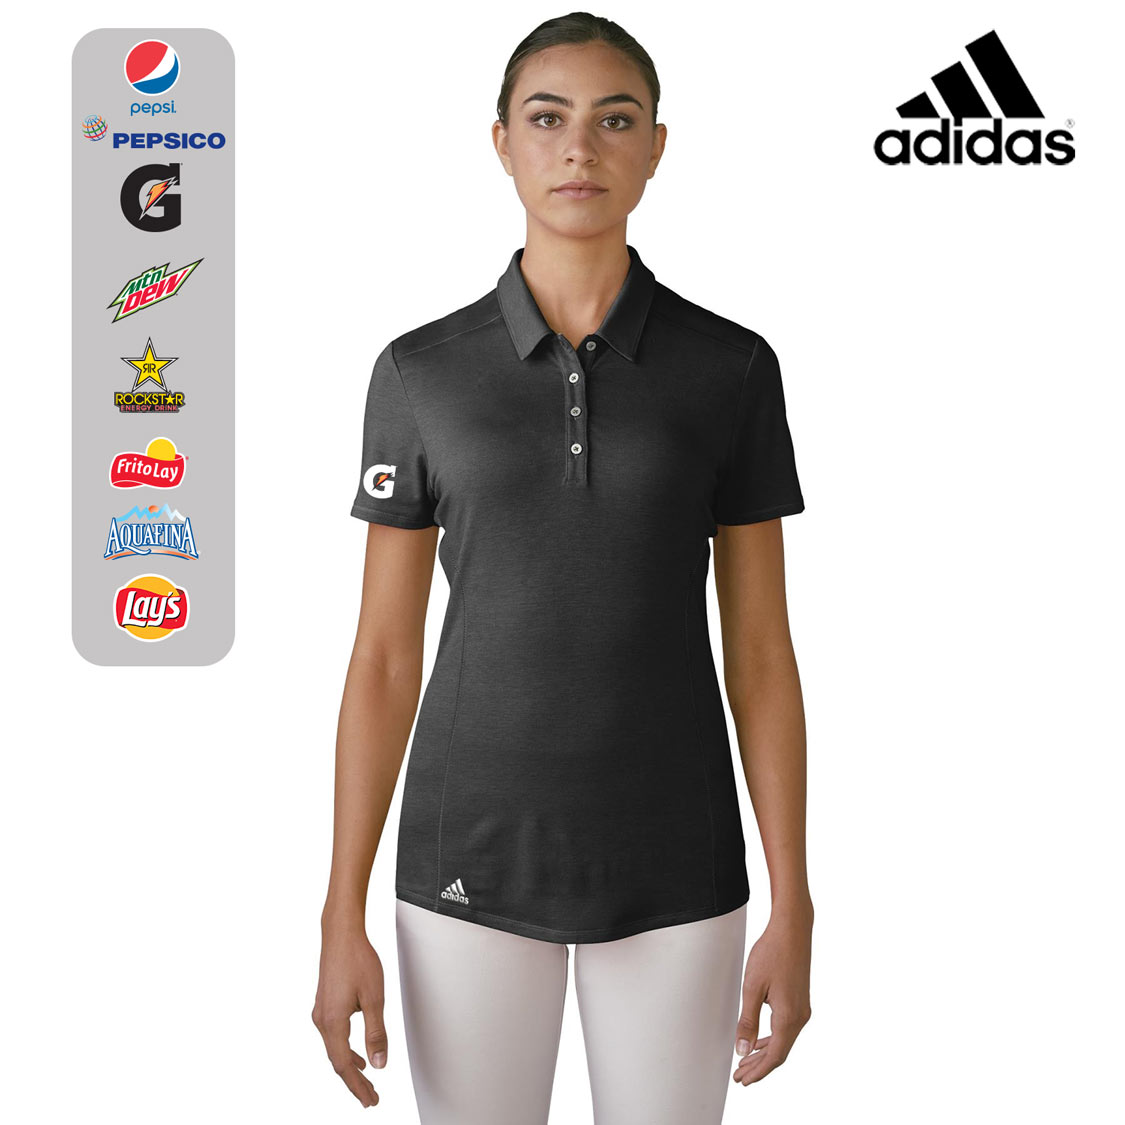 Ladies' Adidas Performance Polo